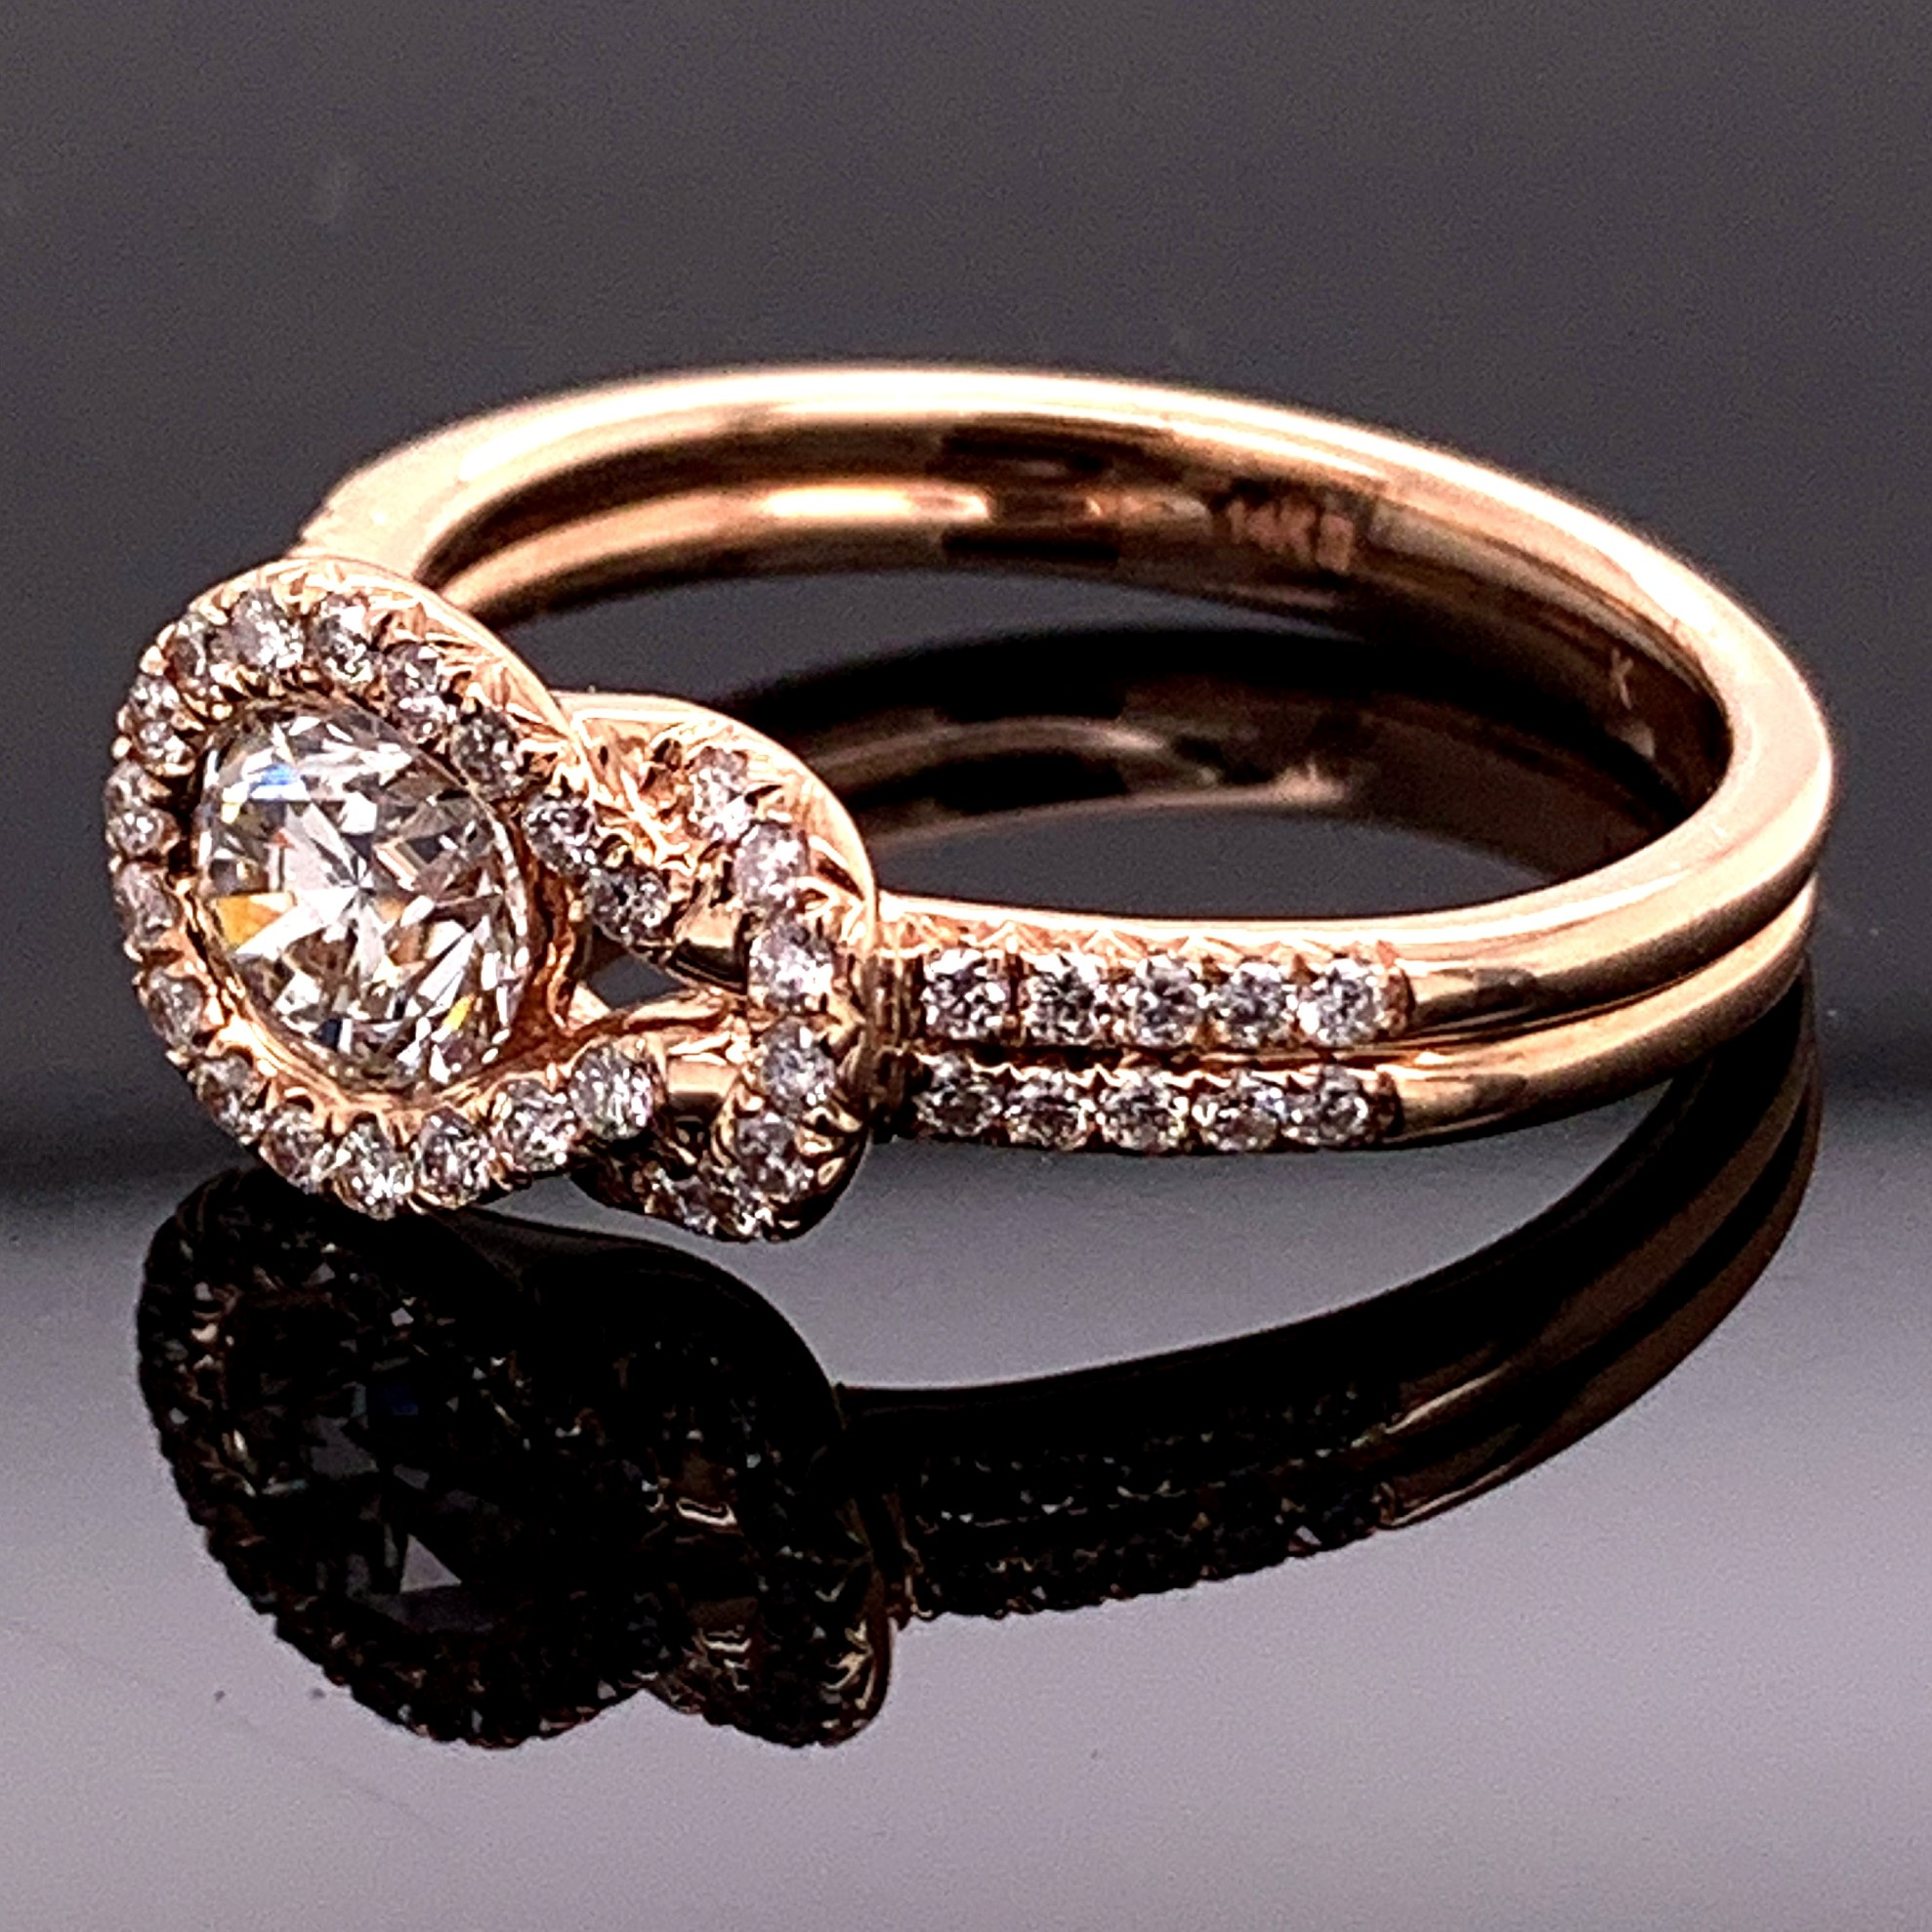 Rose Gold Diamond Everlon Knot Ring Gerald S Jewelry Oak Harbor Wa